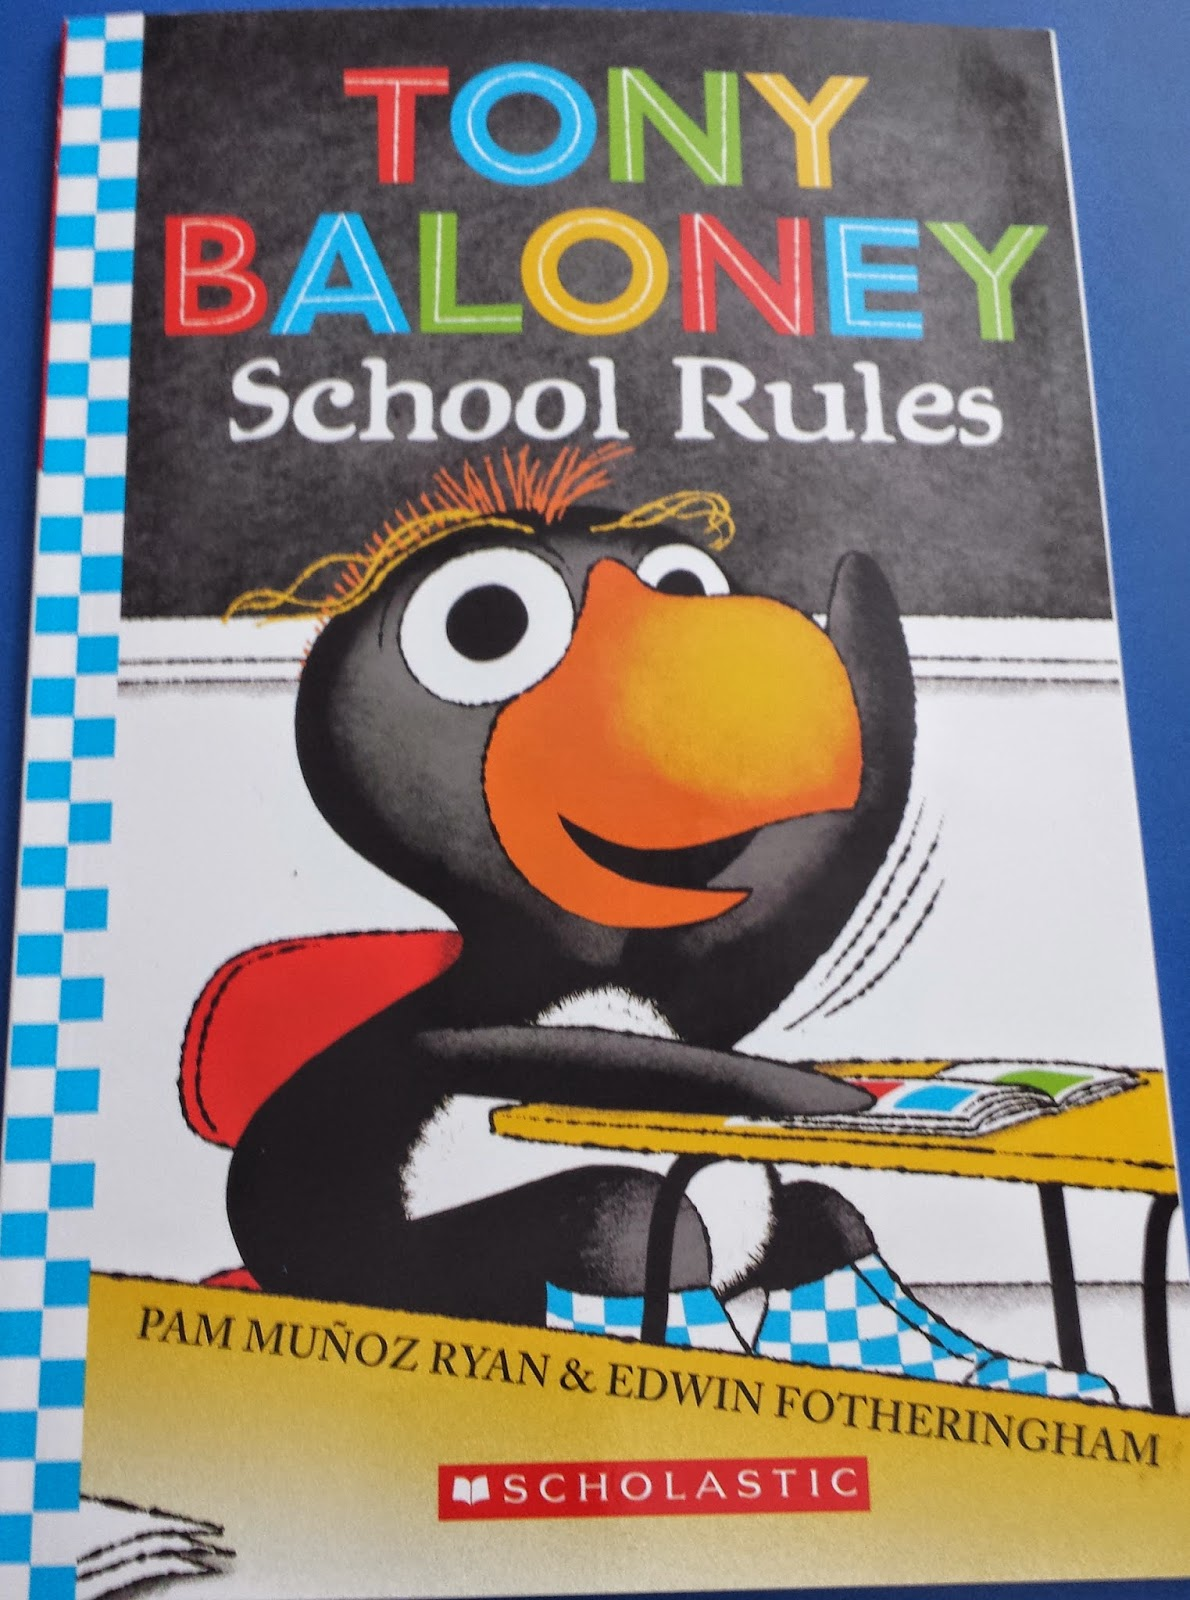 http://www.amazon.com/Tony-Baloney-School-Rules-Munoz/dp/054548166X/ref=sr_1_1?s=books&ie=UTF8&qid=1402415401&sr=1-1&keywords=tony+baloney